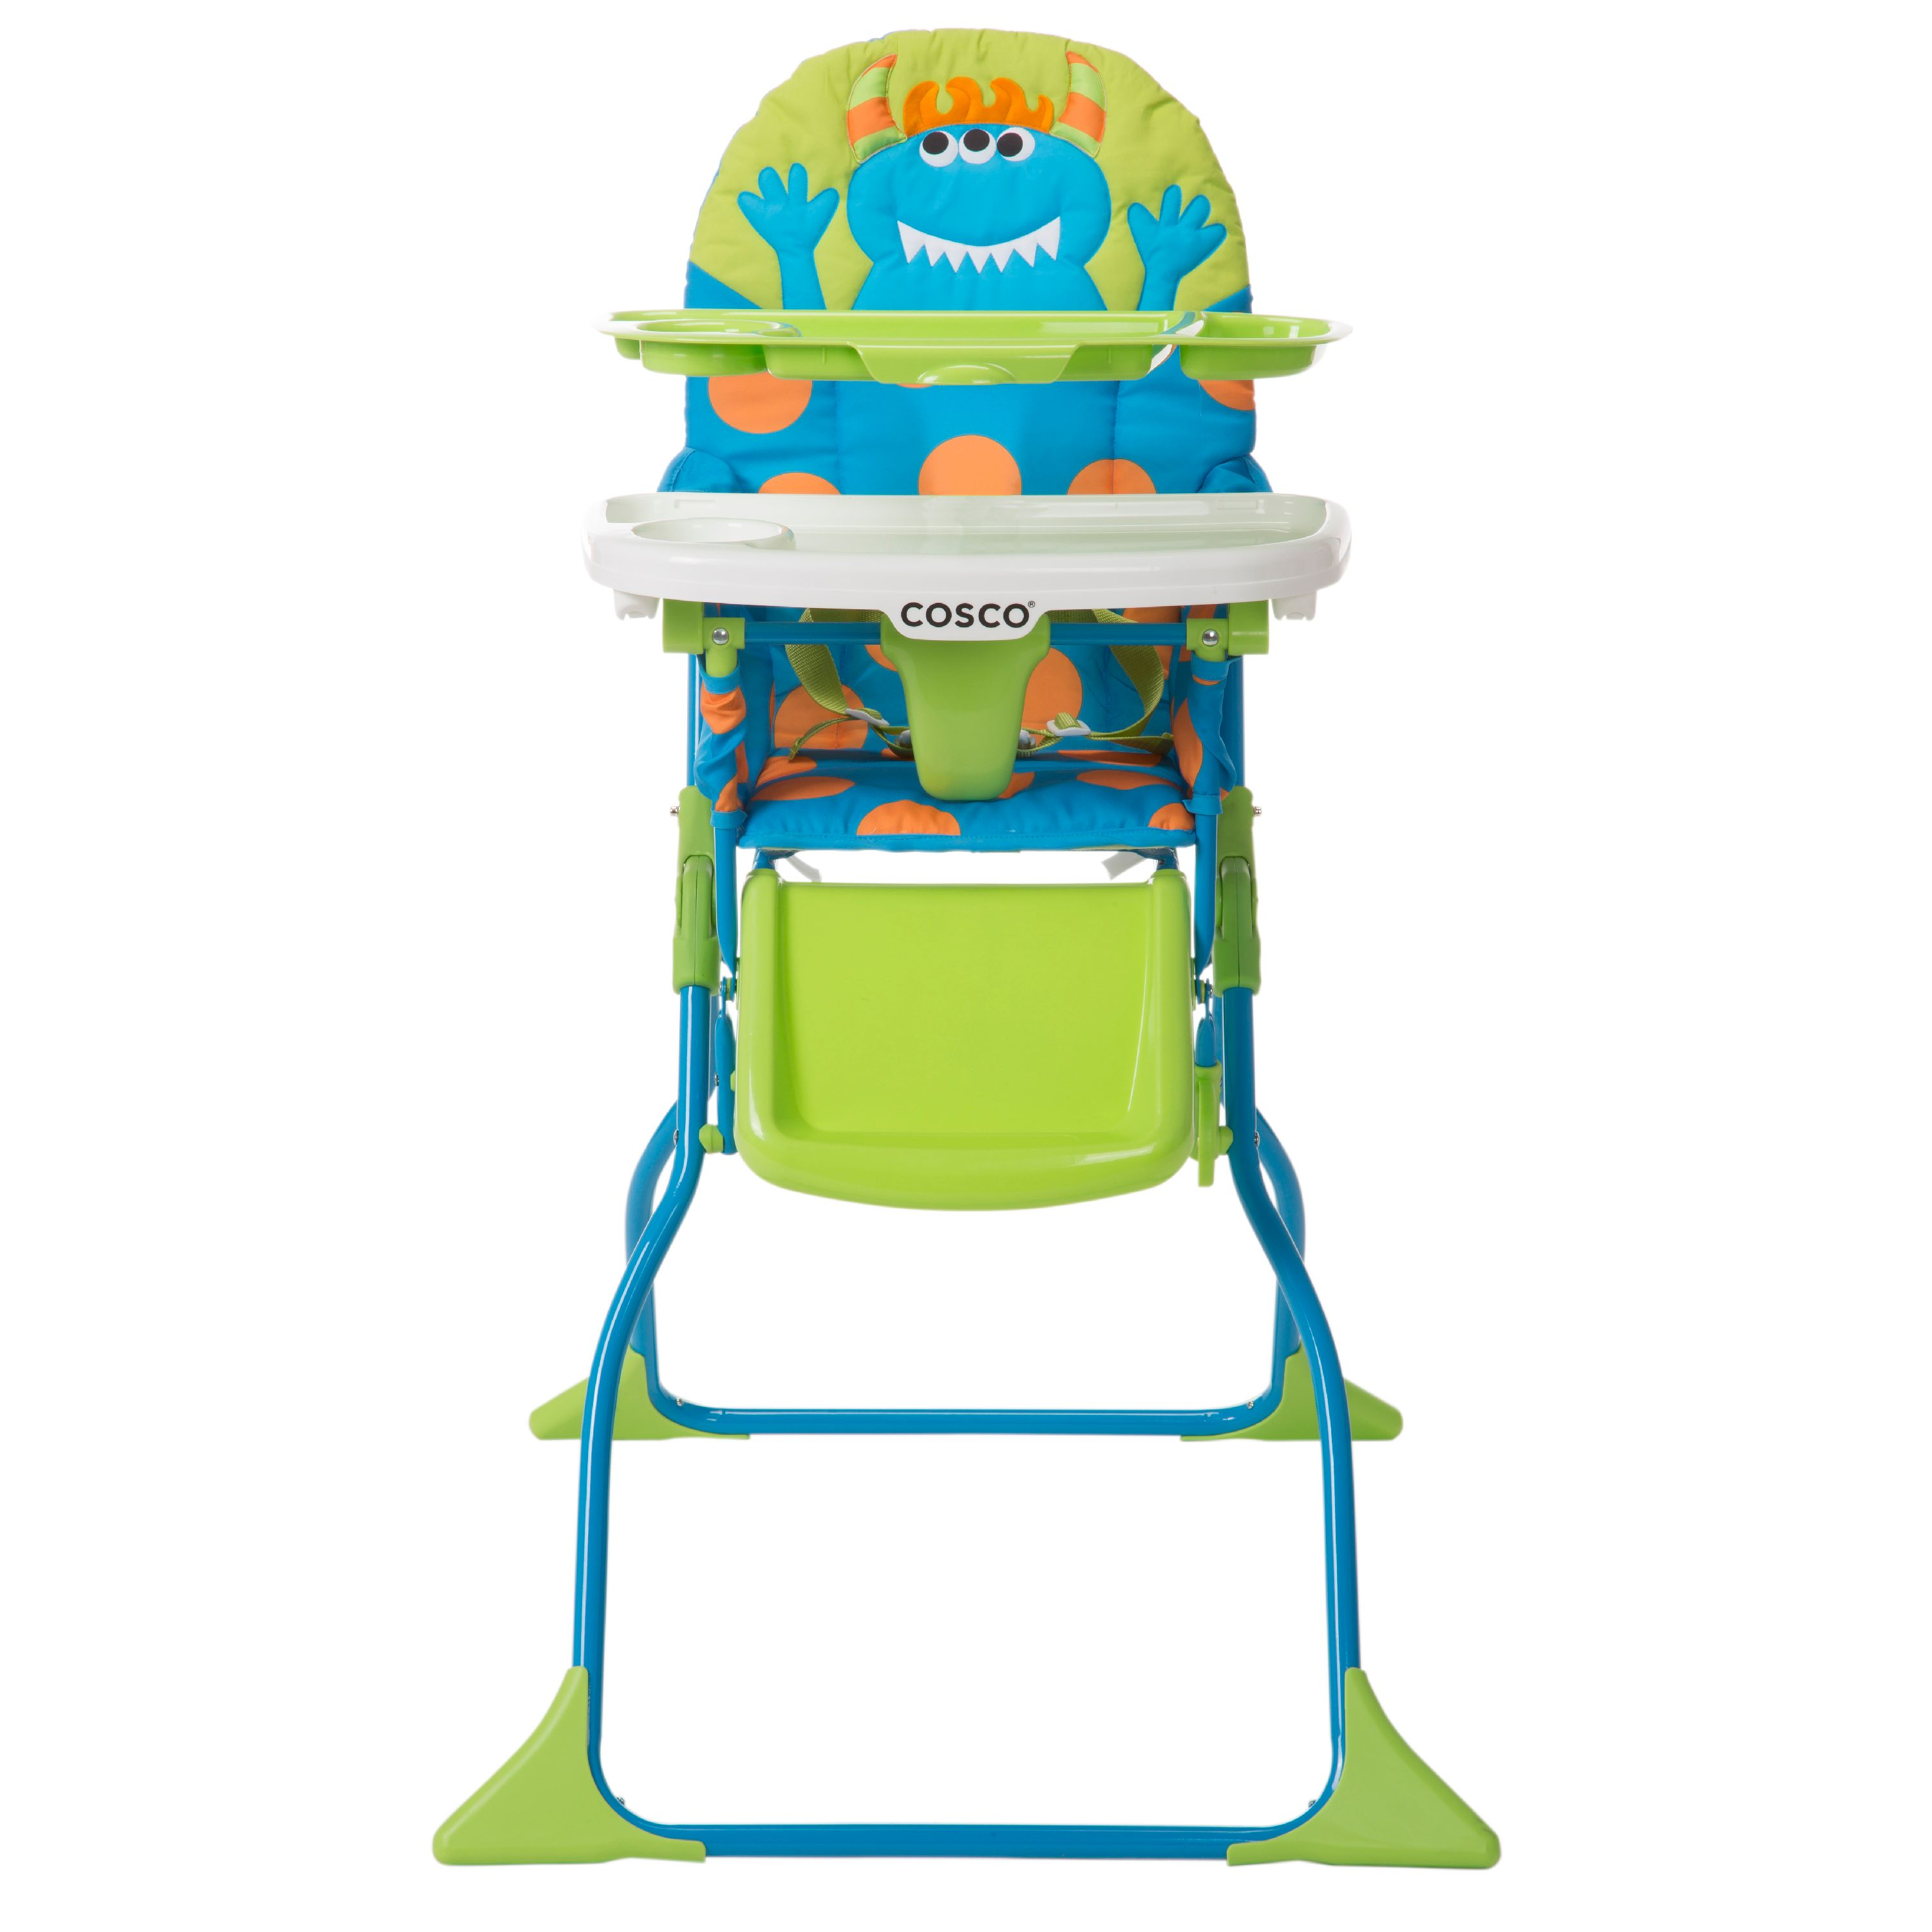 evenflo easy fold high chair maribel baby electric rocking swing cradle sw 102 fisher price online store